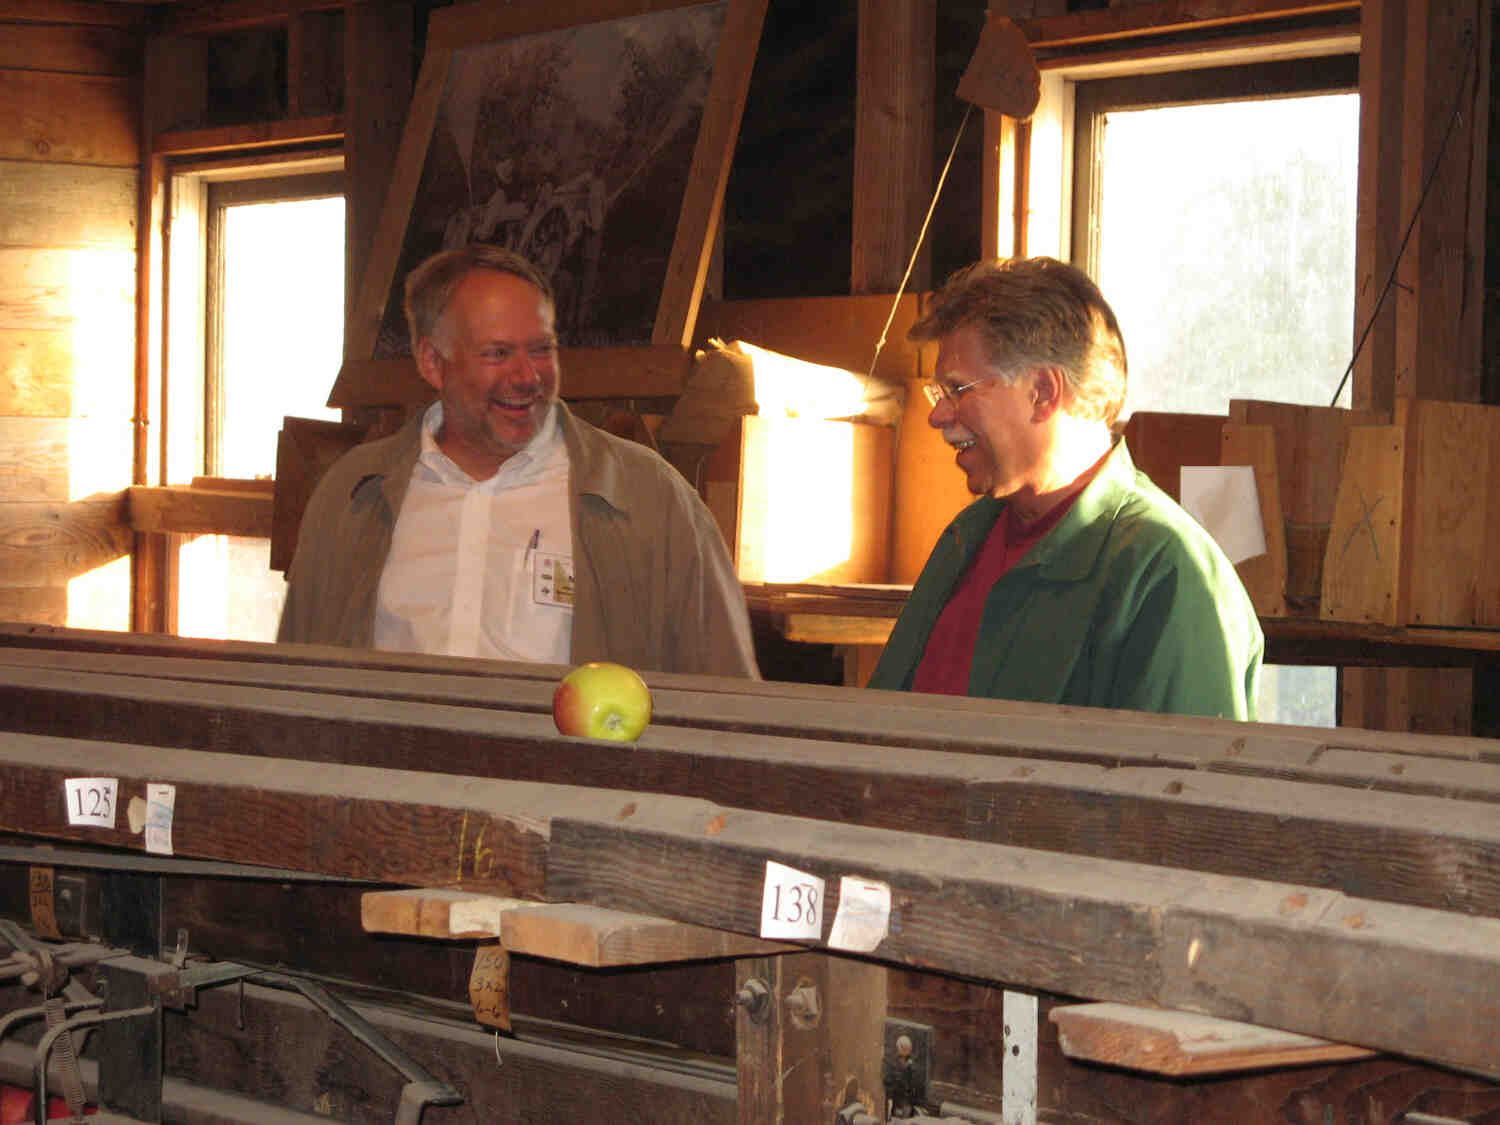 Two men talking in a barn near a pile of lumber with an apple sitting on top.